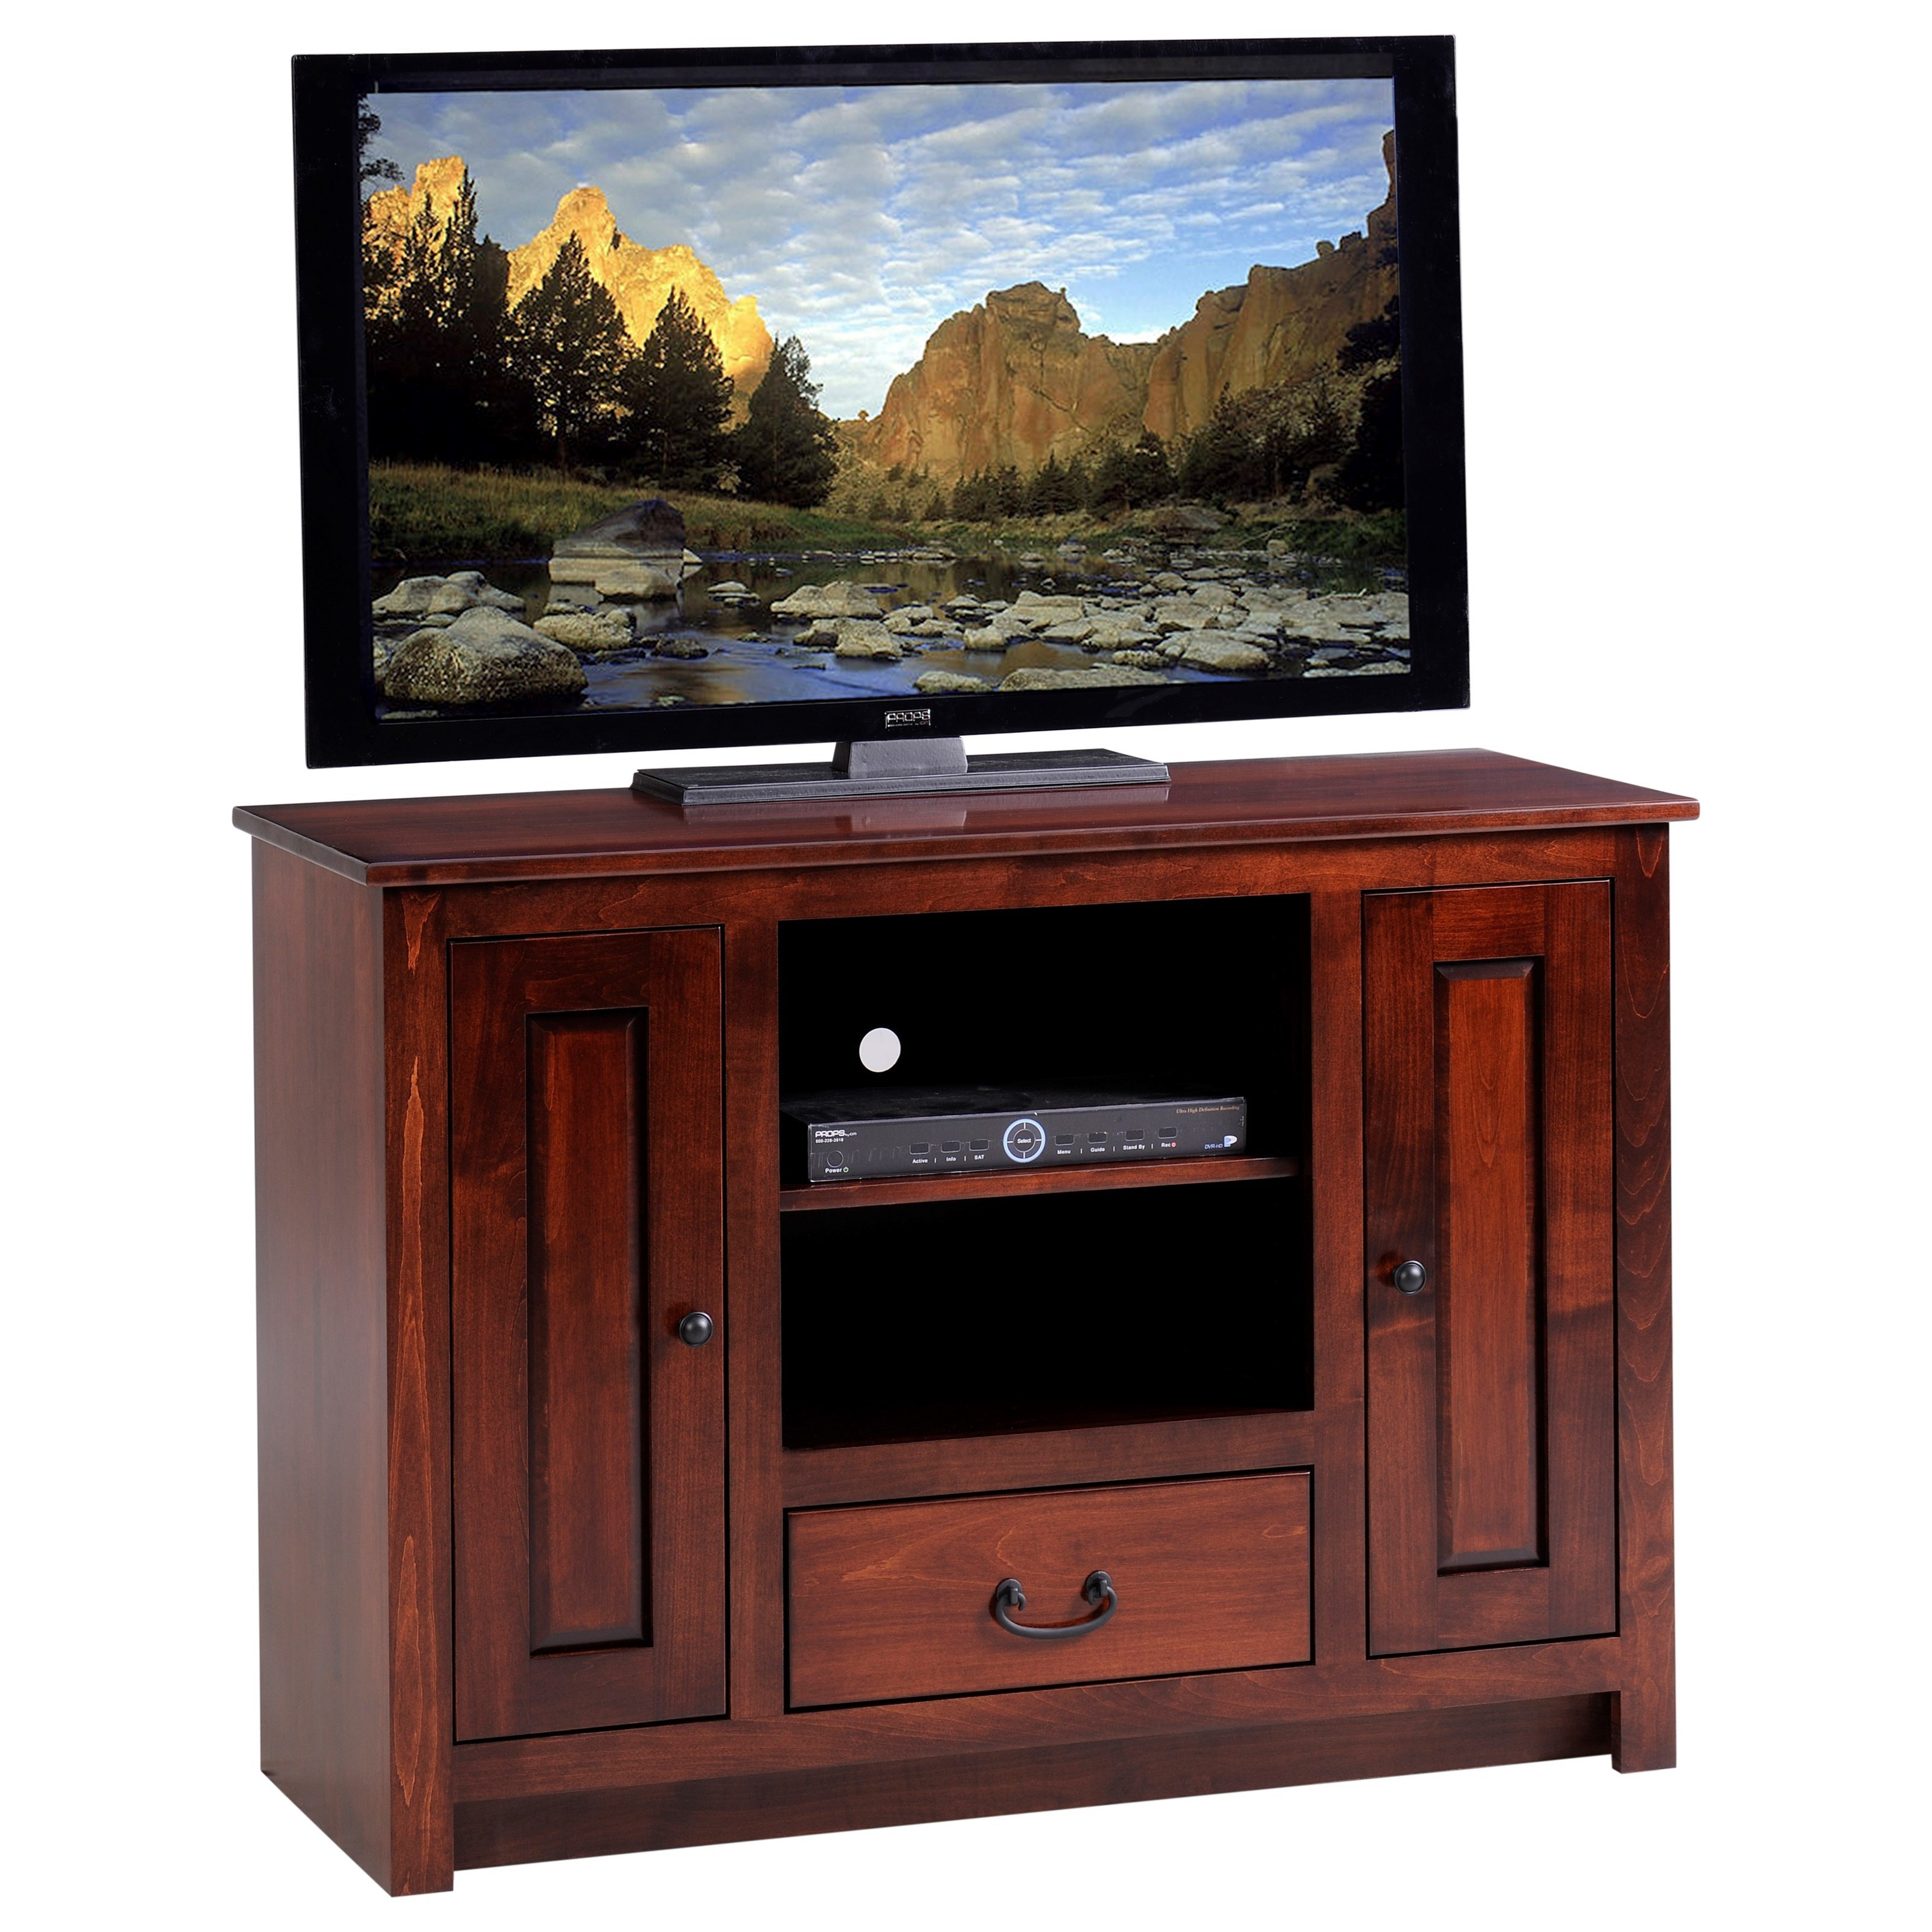 "Express 45"" TV Stand by Y & T Woodcraft at Saugerties Furniture Mart"